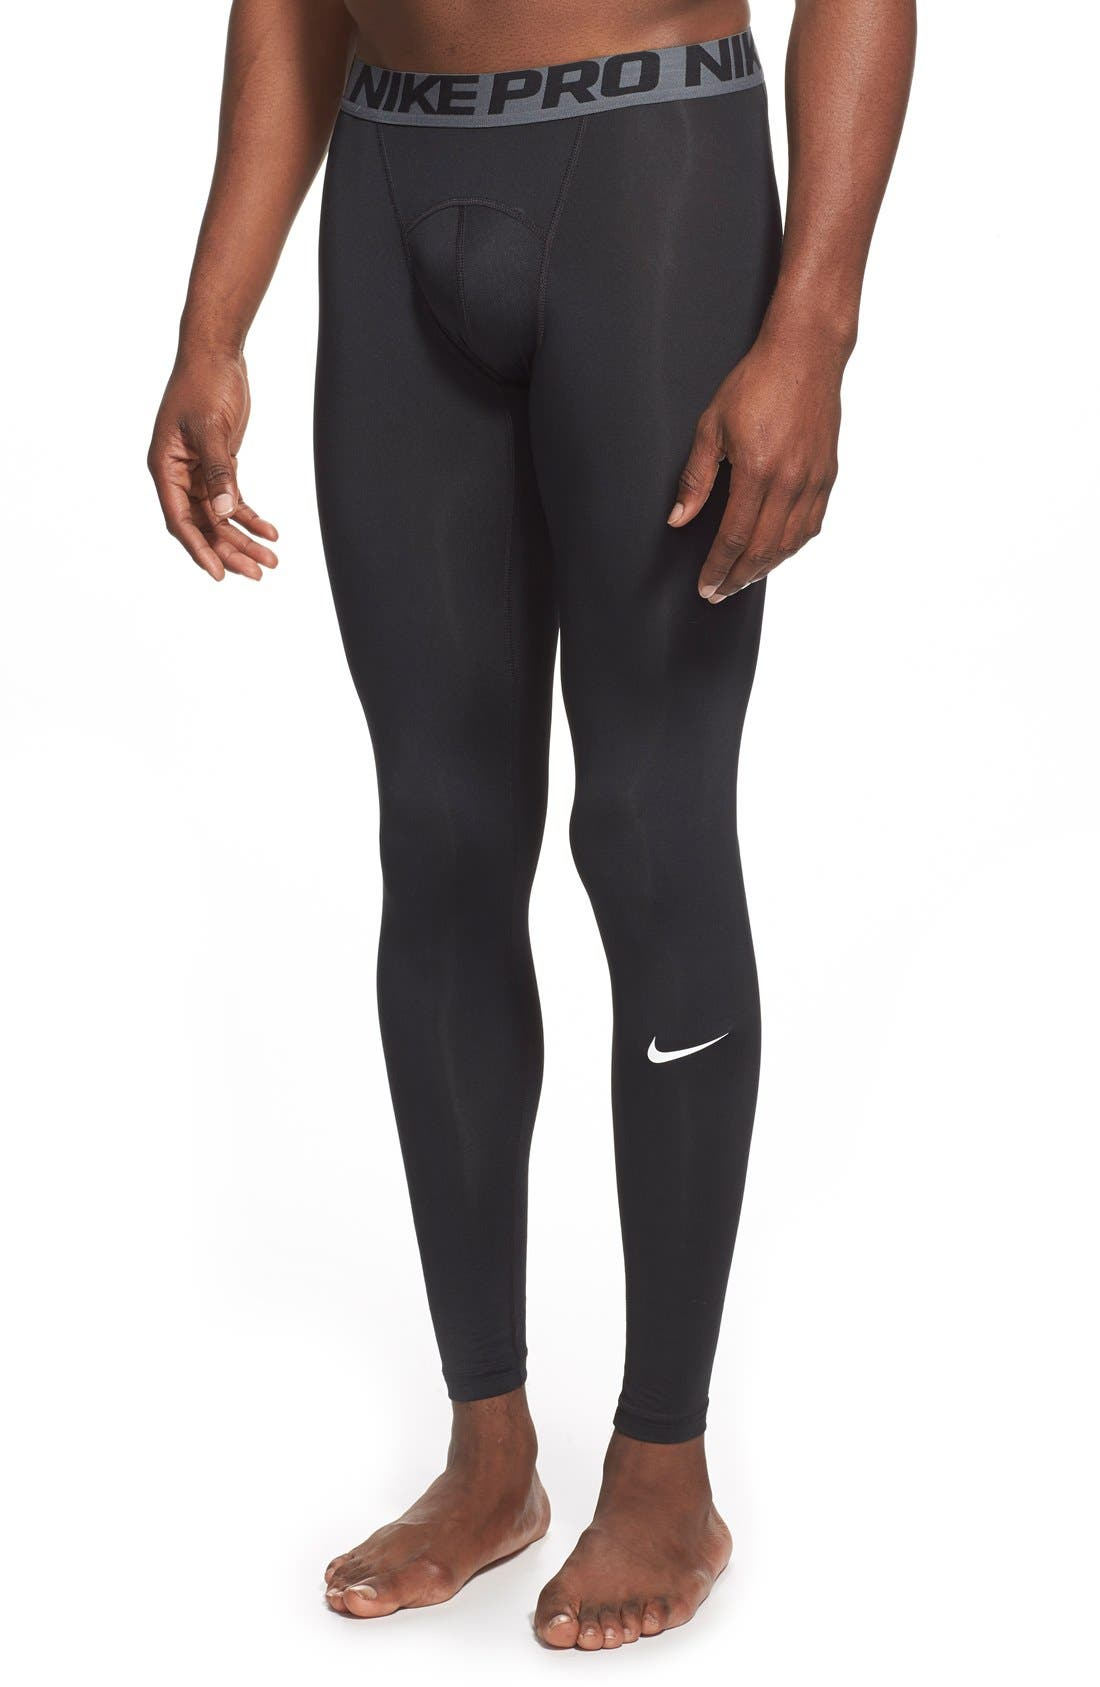 NIKE 'Pro Cool Compression' Four-Way Stretch Dri-FIT Tights